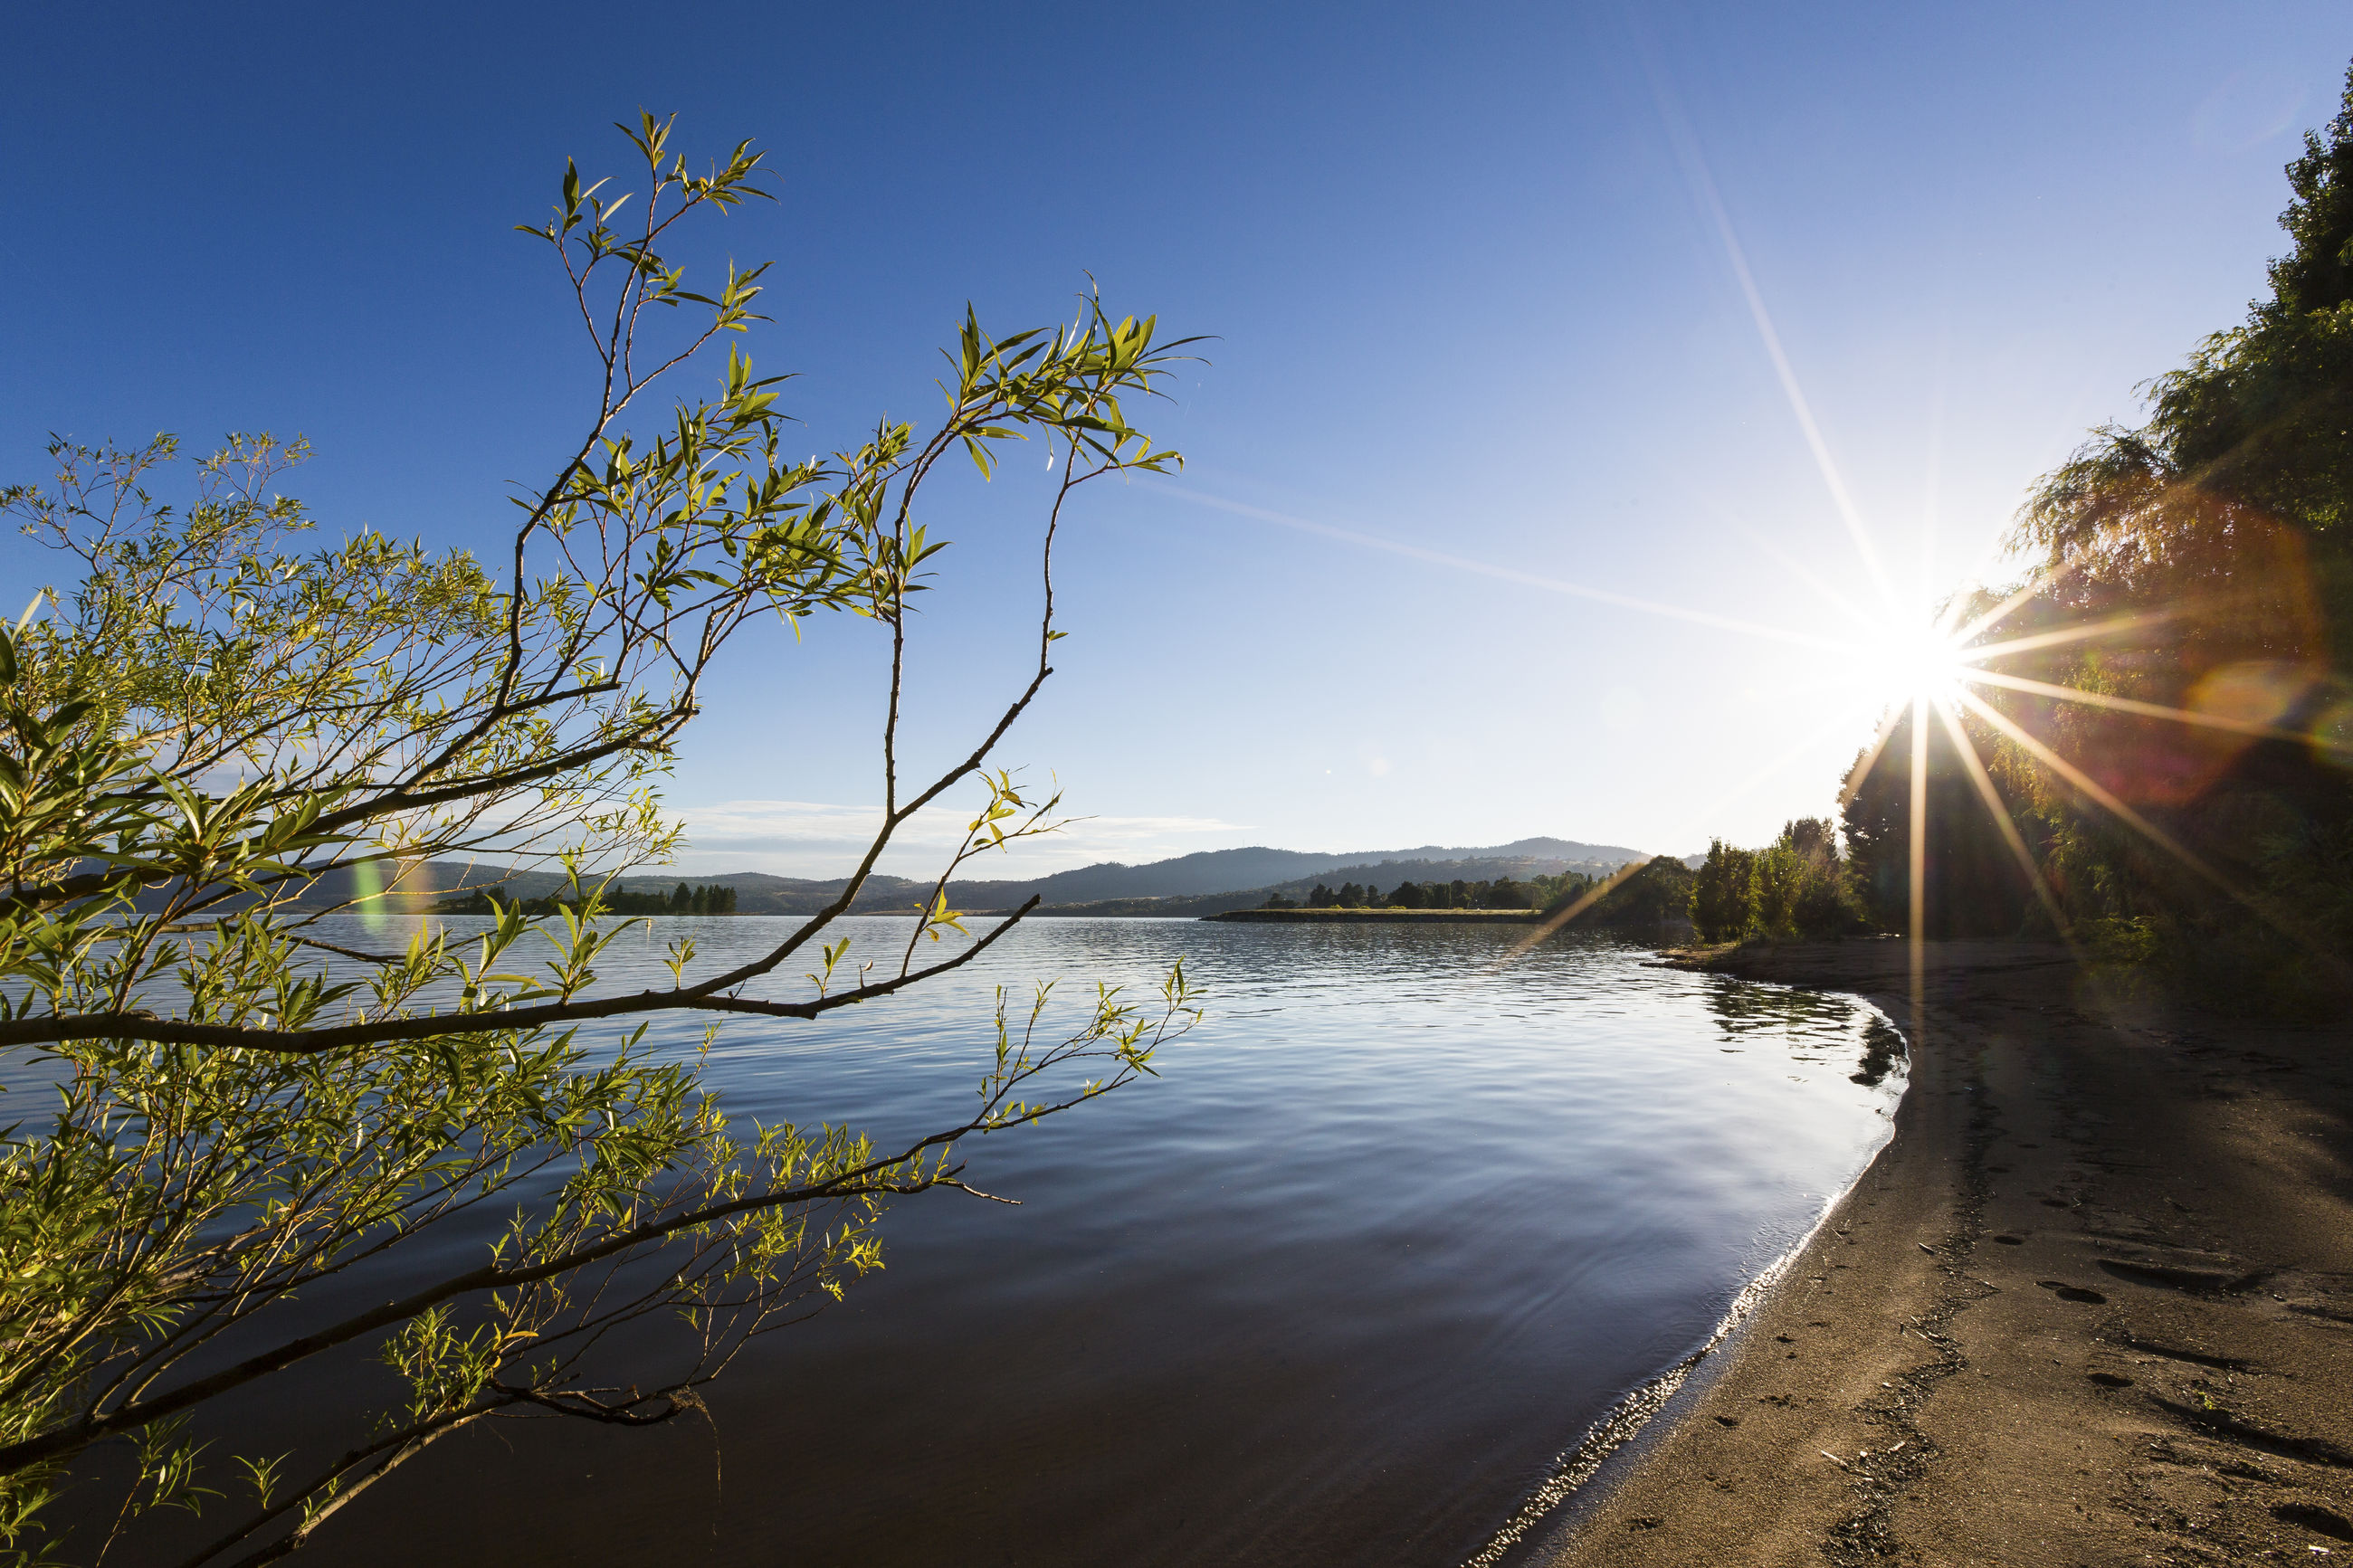 sunlight, beauty in nature, nature, tranquility, lens flare, sun, tranquil scene, water, scenics, no people, tree, lake, outdoors, plant, day, sky, clear sky